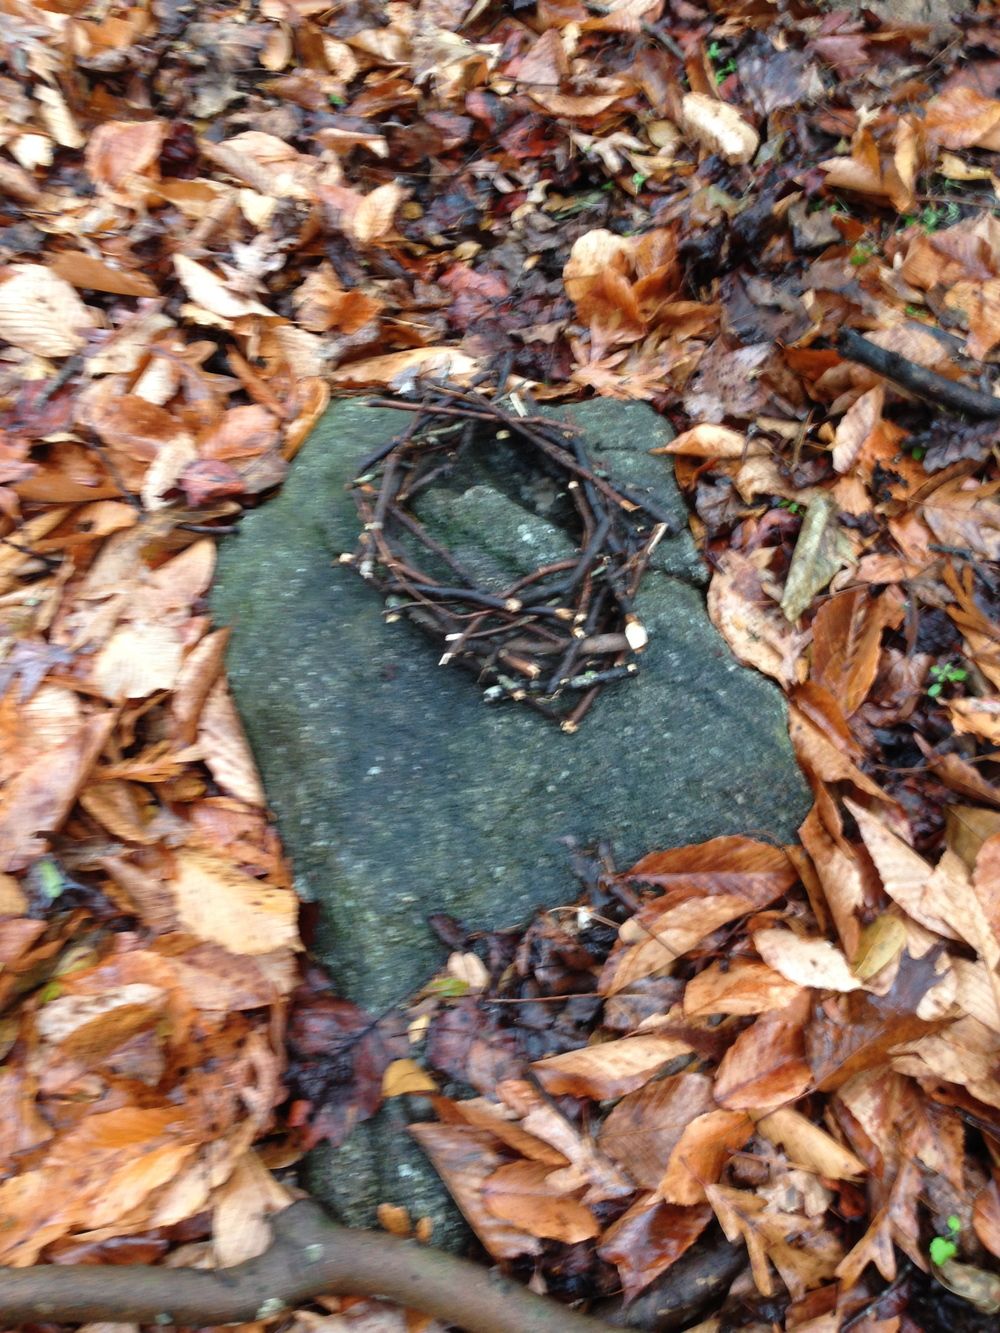 Nest on stone. Birchmore Trail. Athens, GA. Fall 2013.